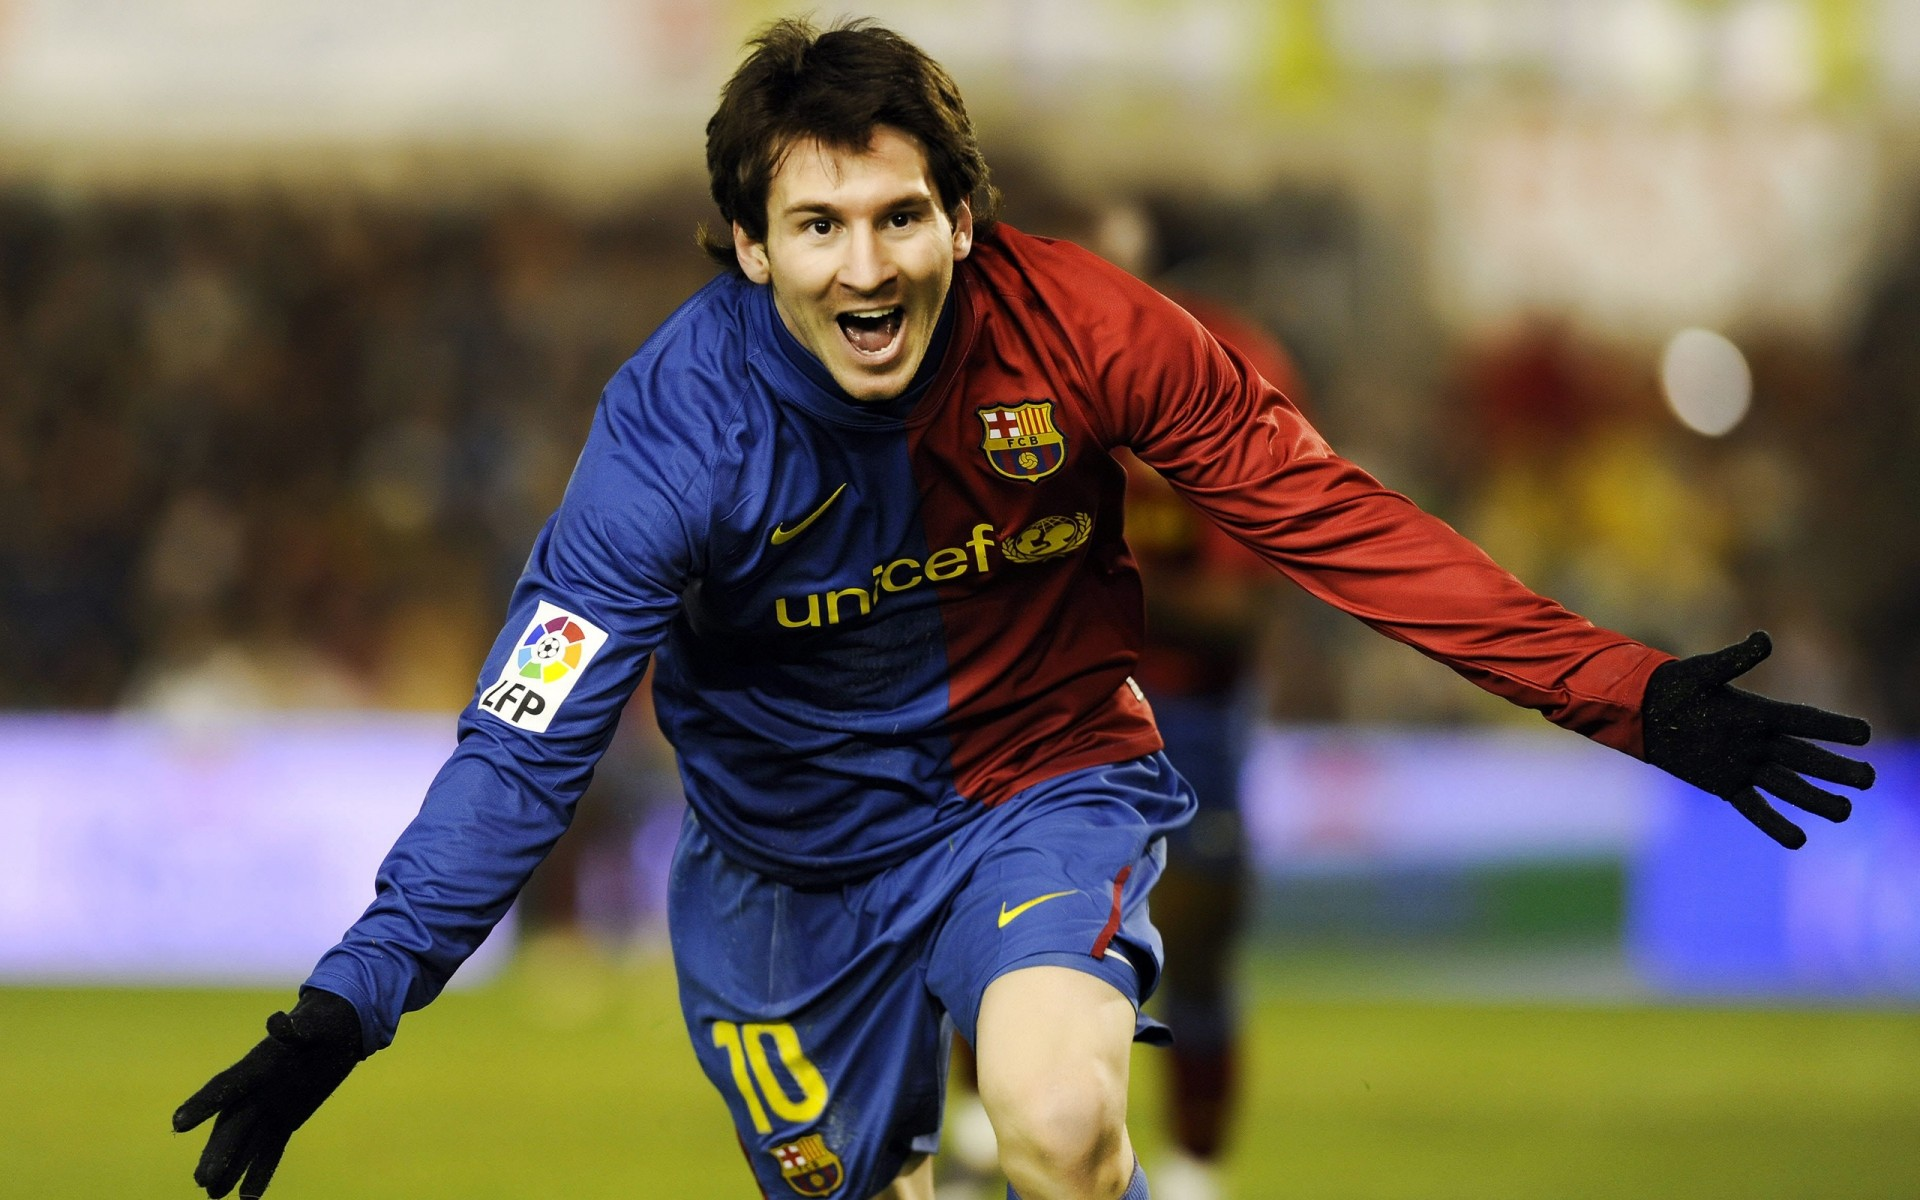 Lionel messi barcelona android wallpapers for free voltagebd Image collections